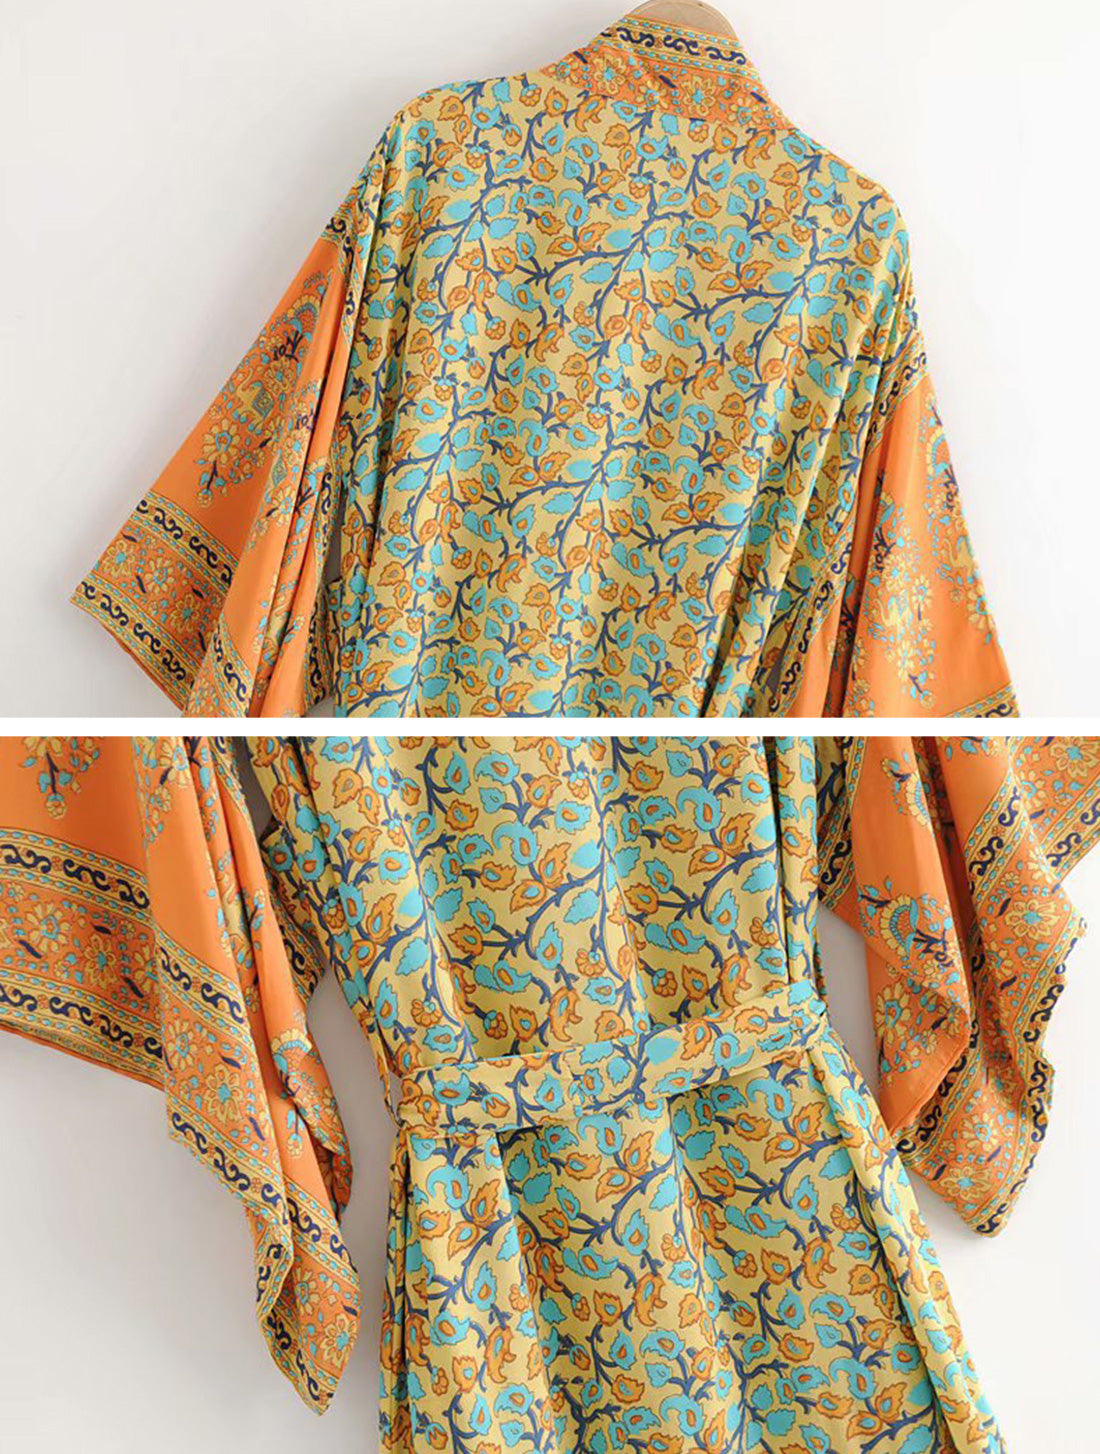 No Rush Orange Kimono Robe Details 4